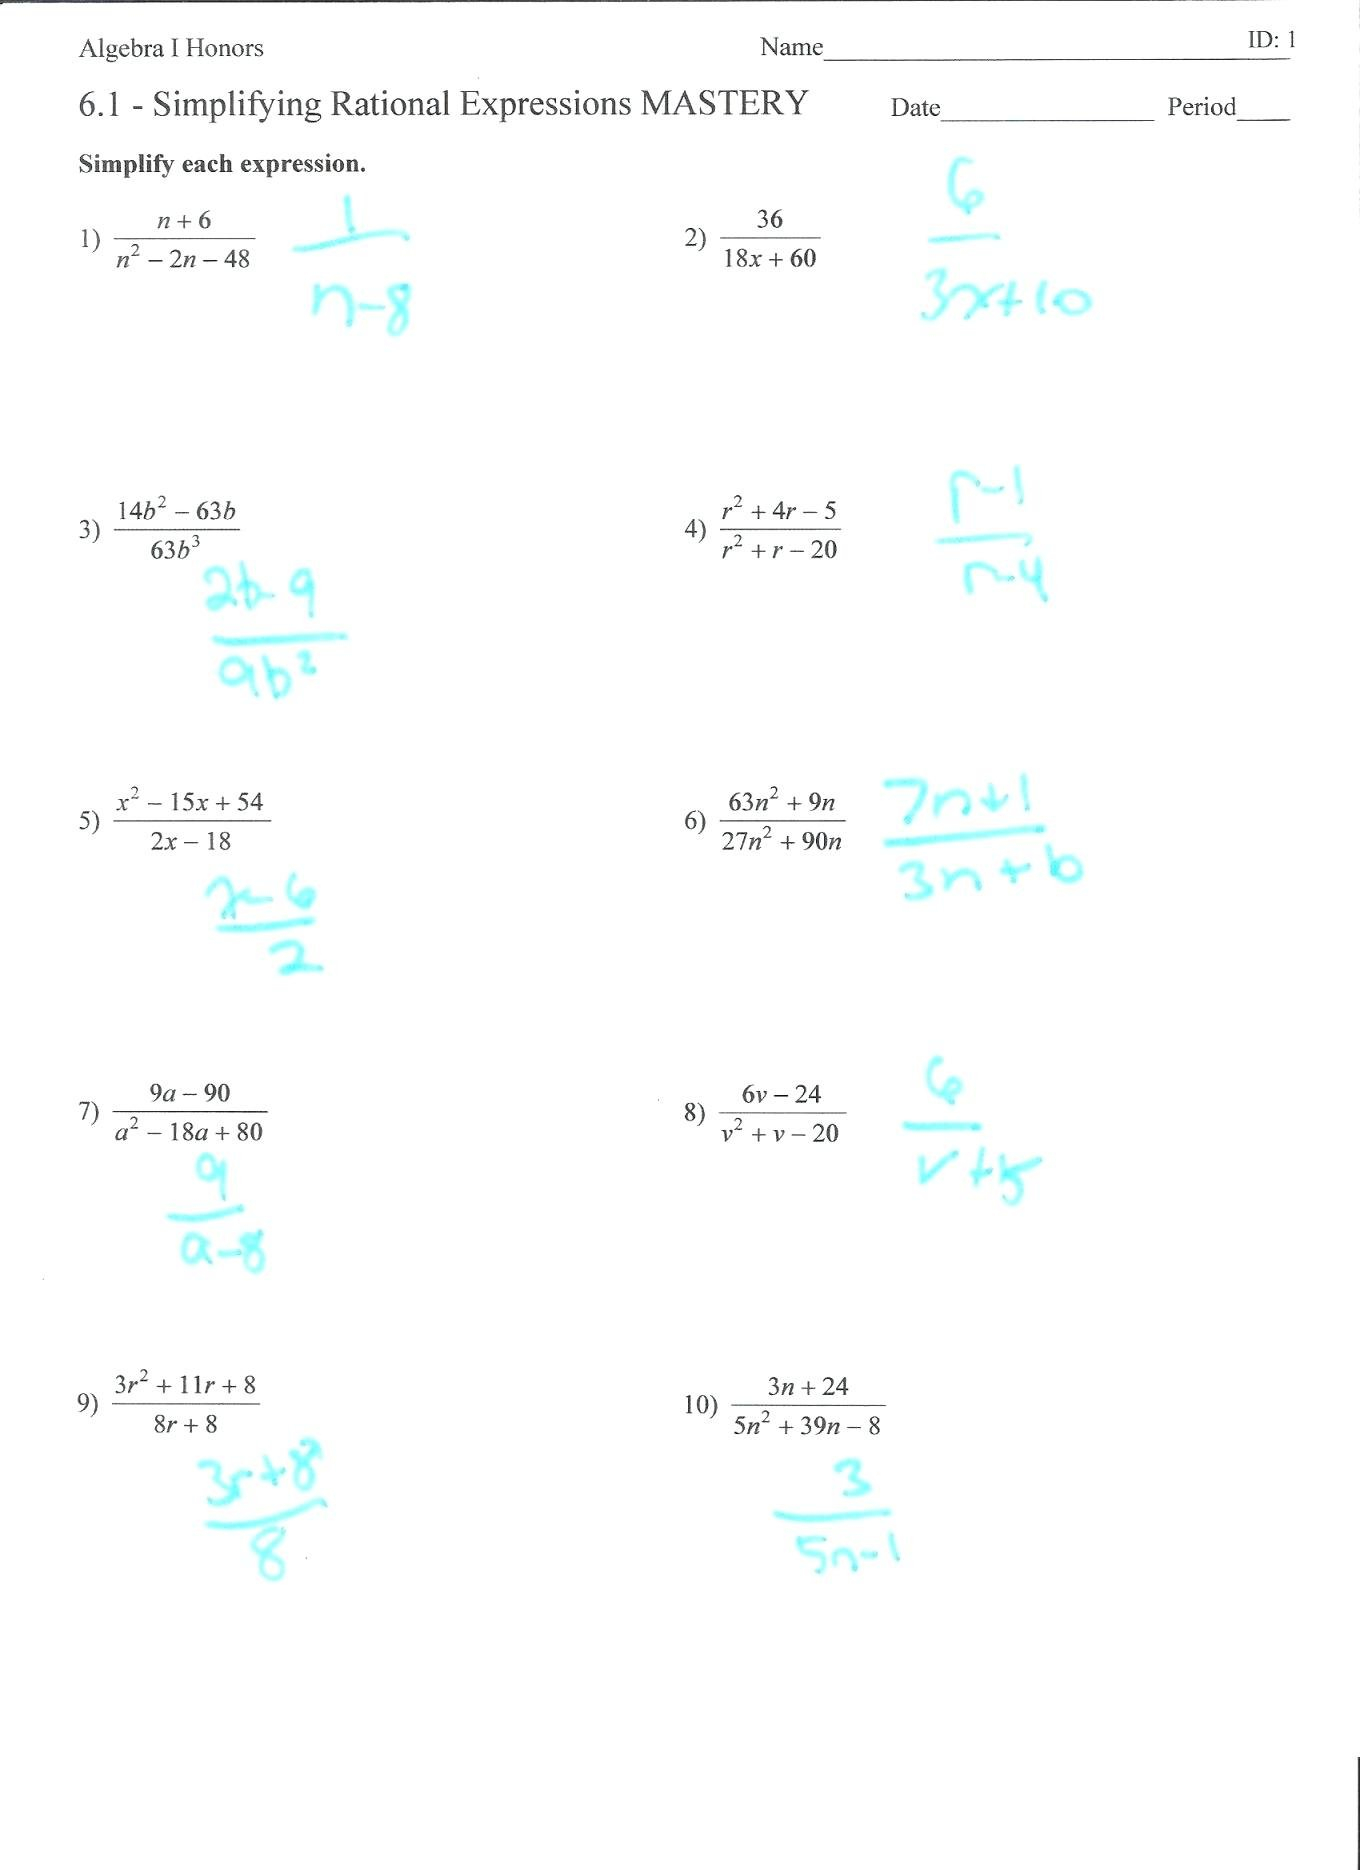 Simplified Rational Expression Math Simplifying Radical Expressions Also Simplify Each Expression Worksheet Answers